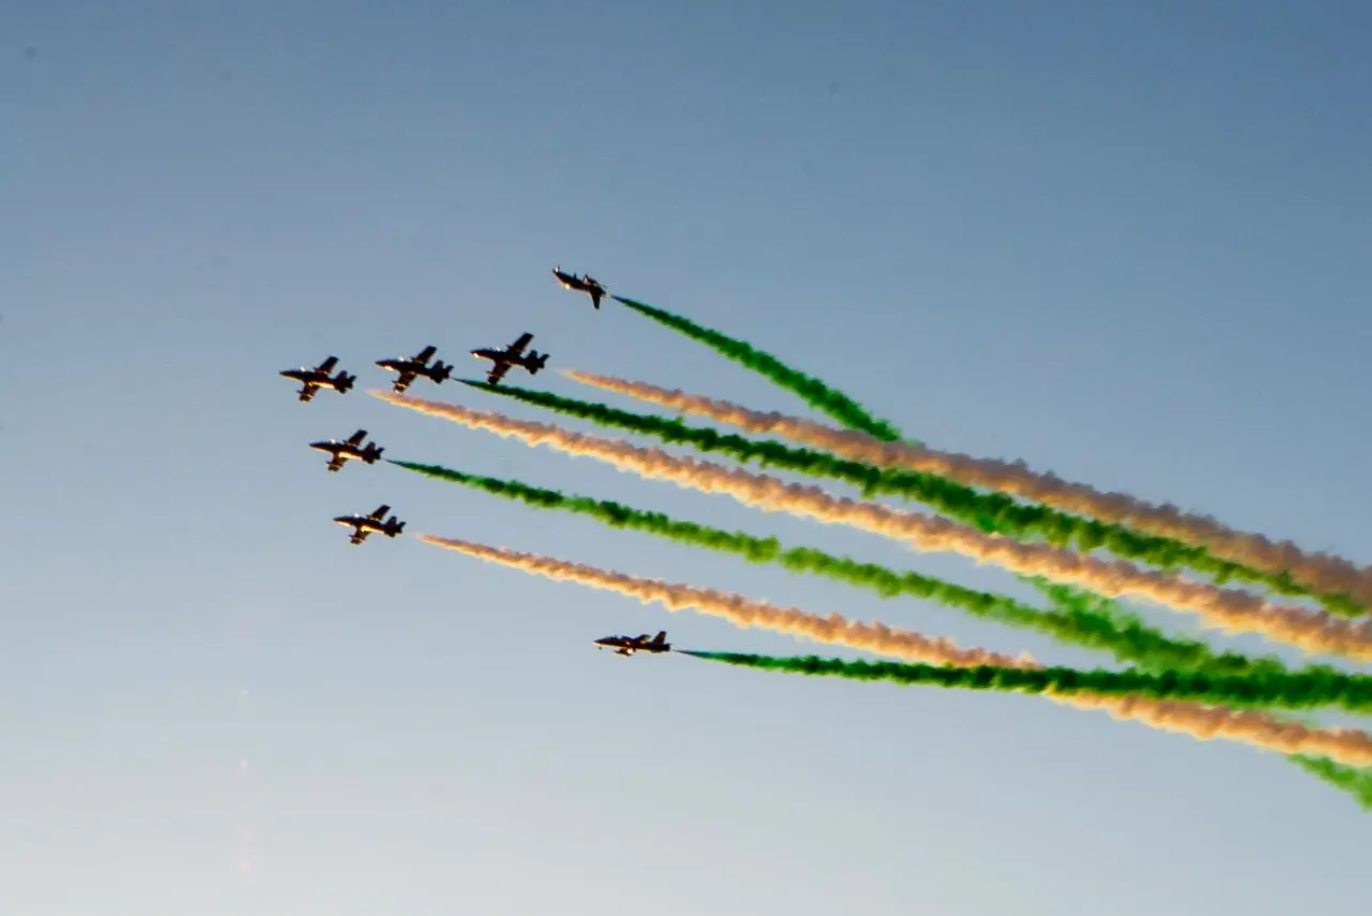 The biggest aircraft show in the history of the Kingdom is set to take place, in celebration of the 91st National Day.